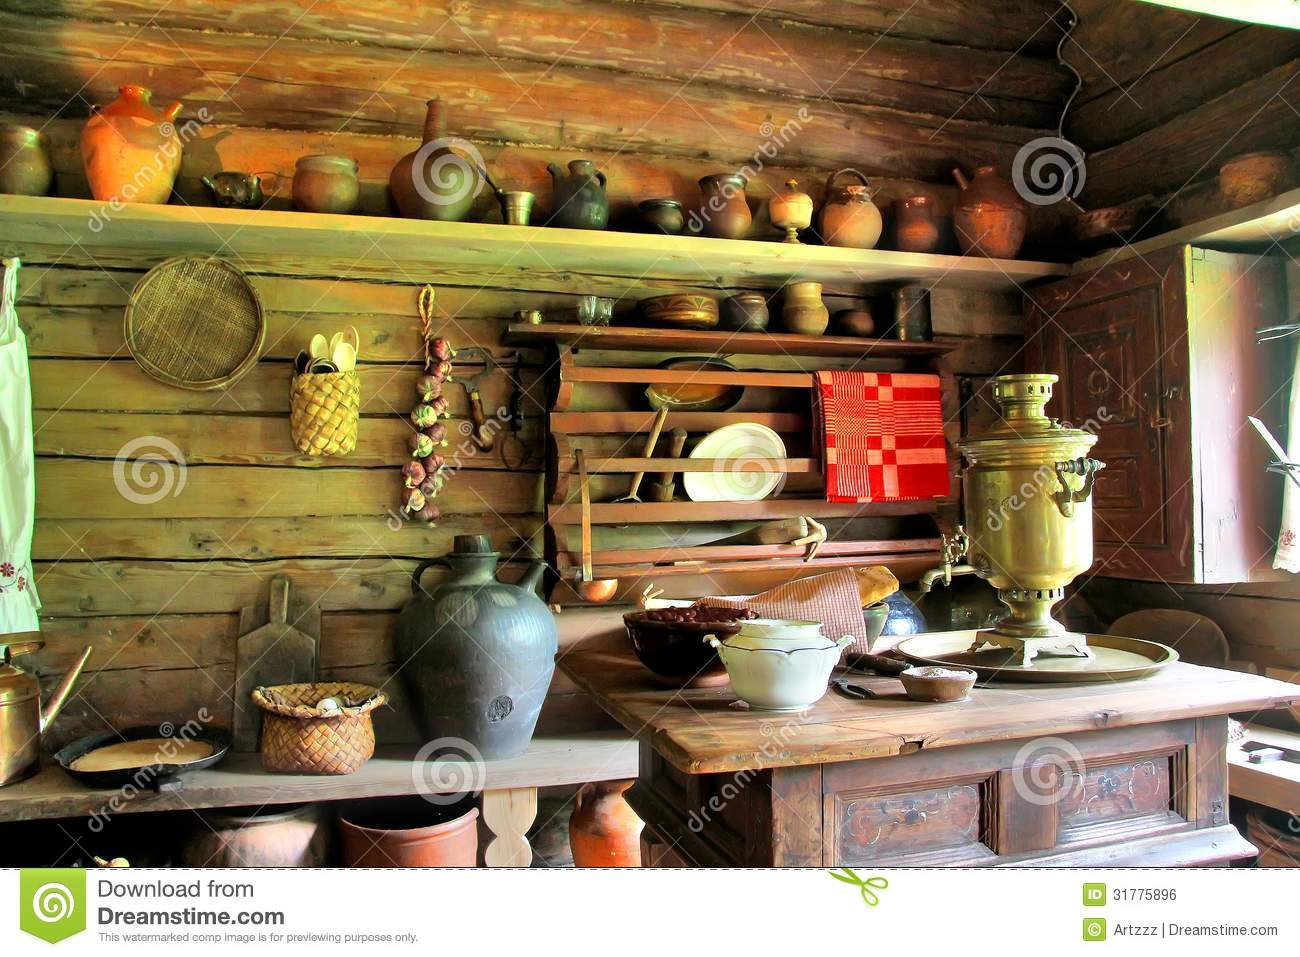 wooden kitchen table light fixtures home depot russian izba stock photo. image of inside, clay, aged ...